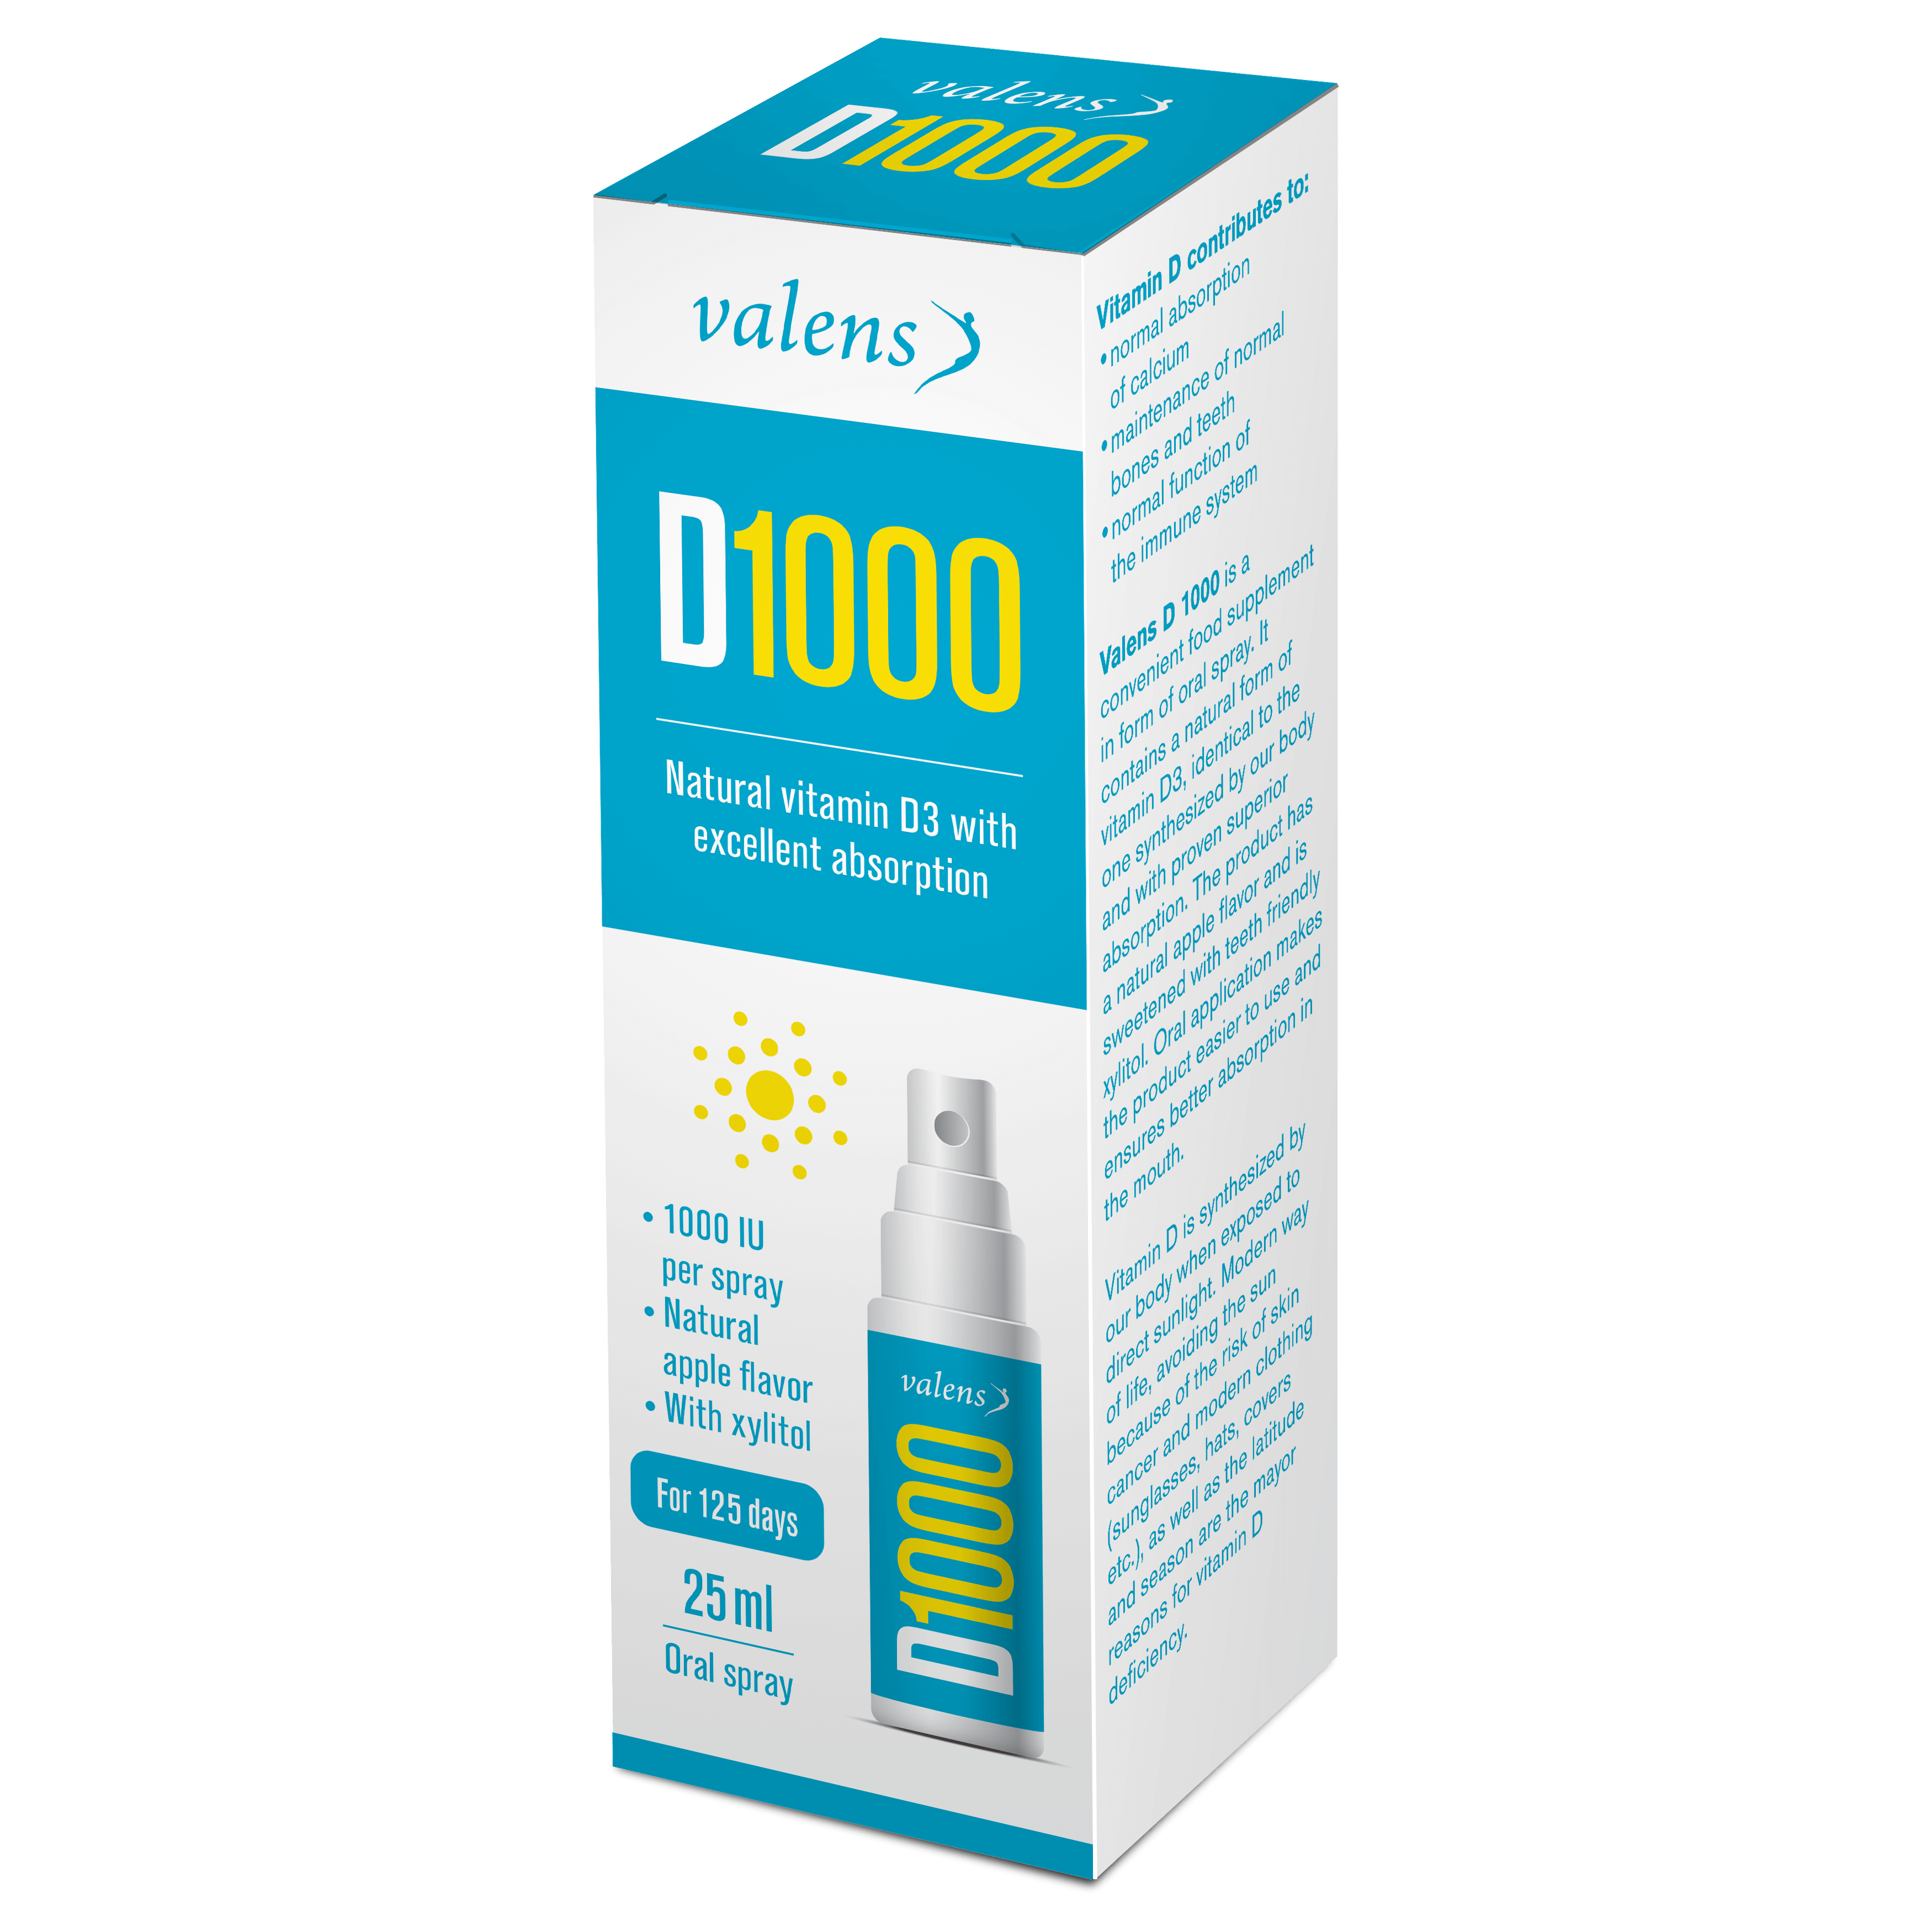 Spray D1000, 25ml (2395)